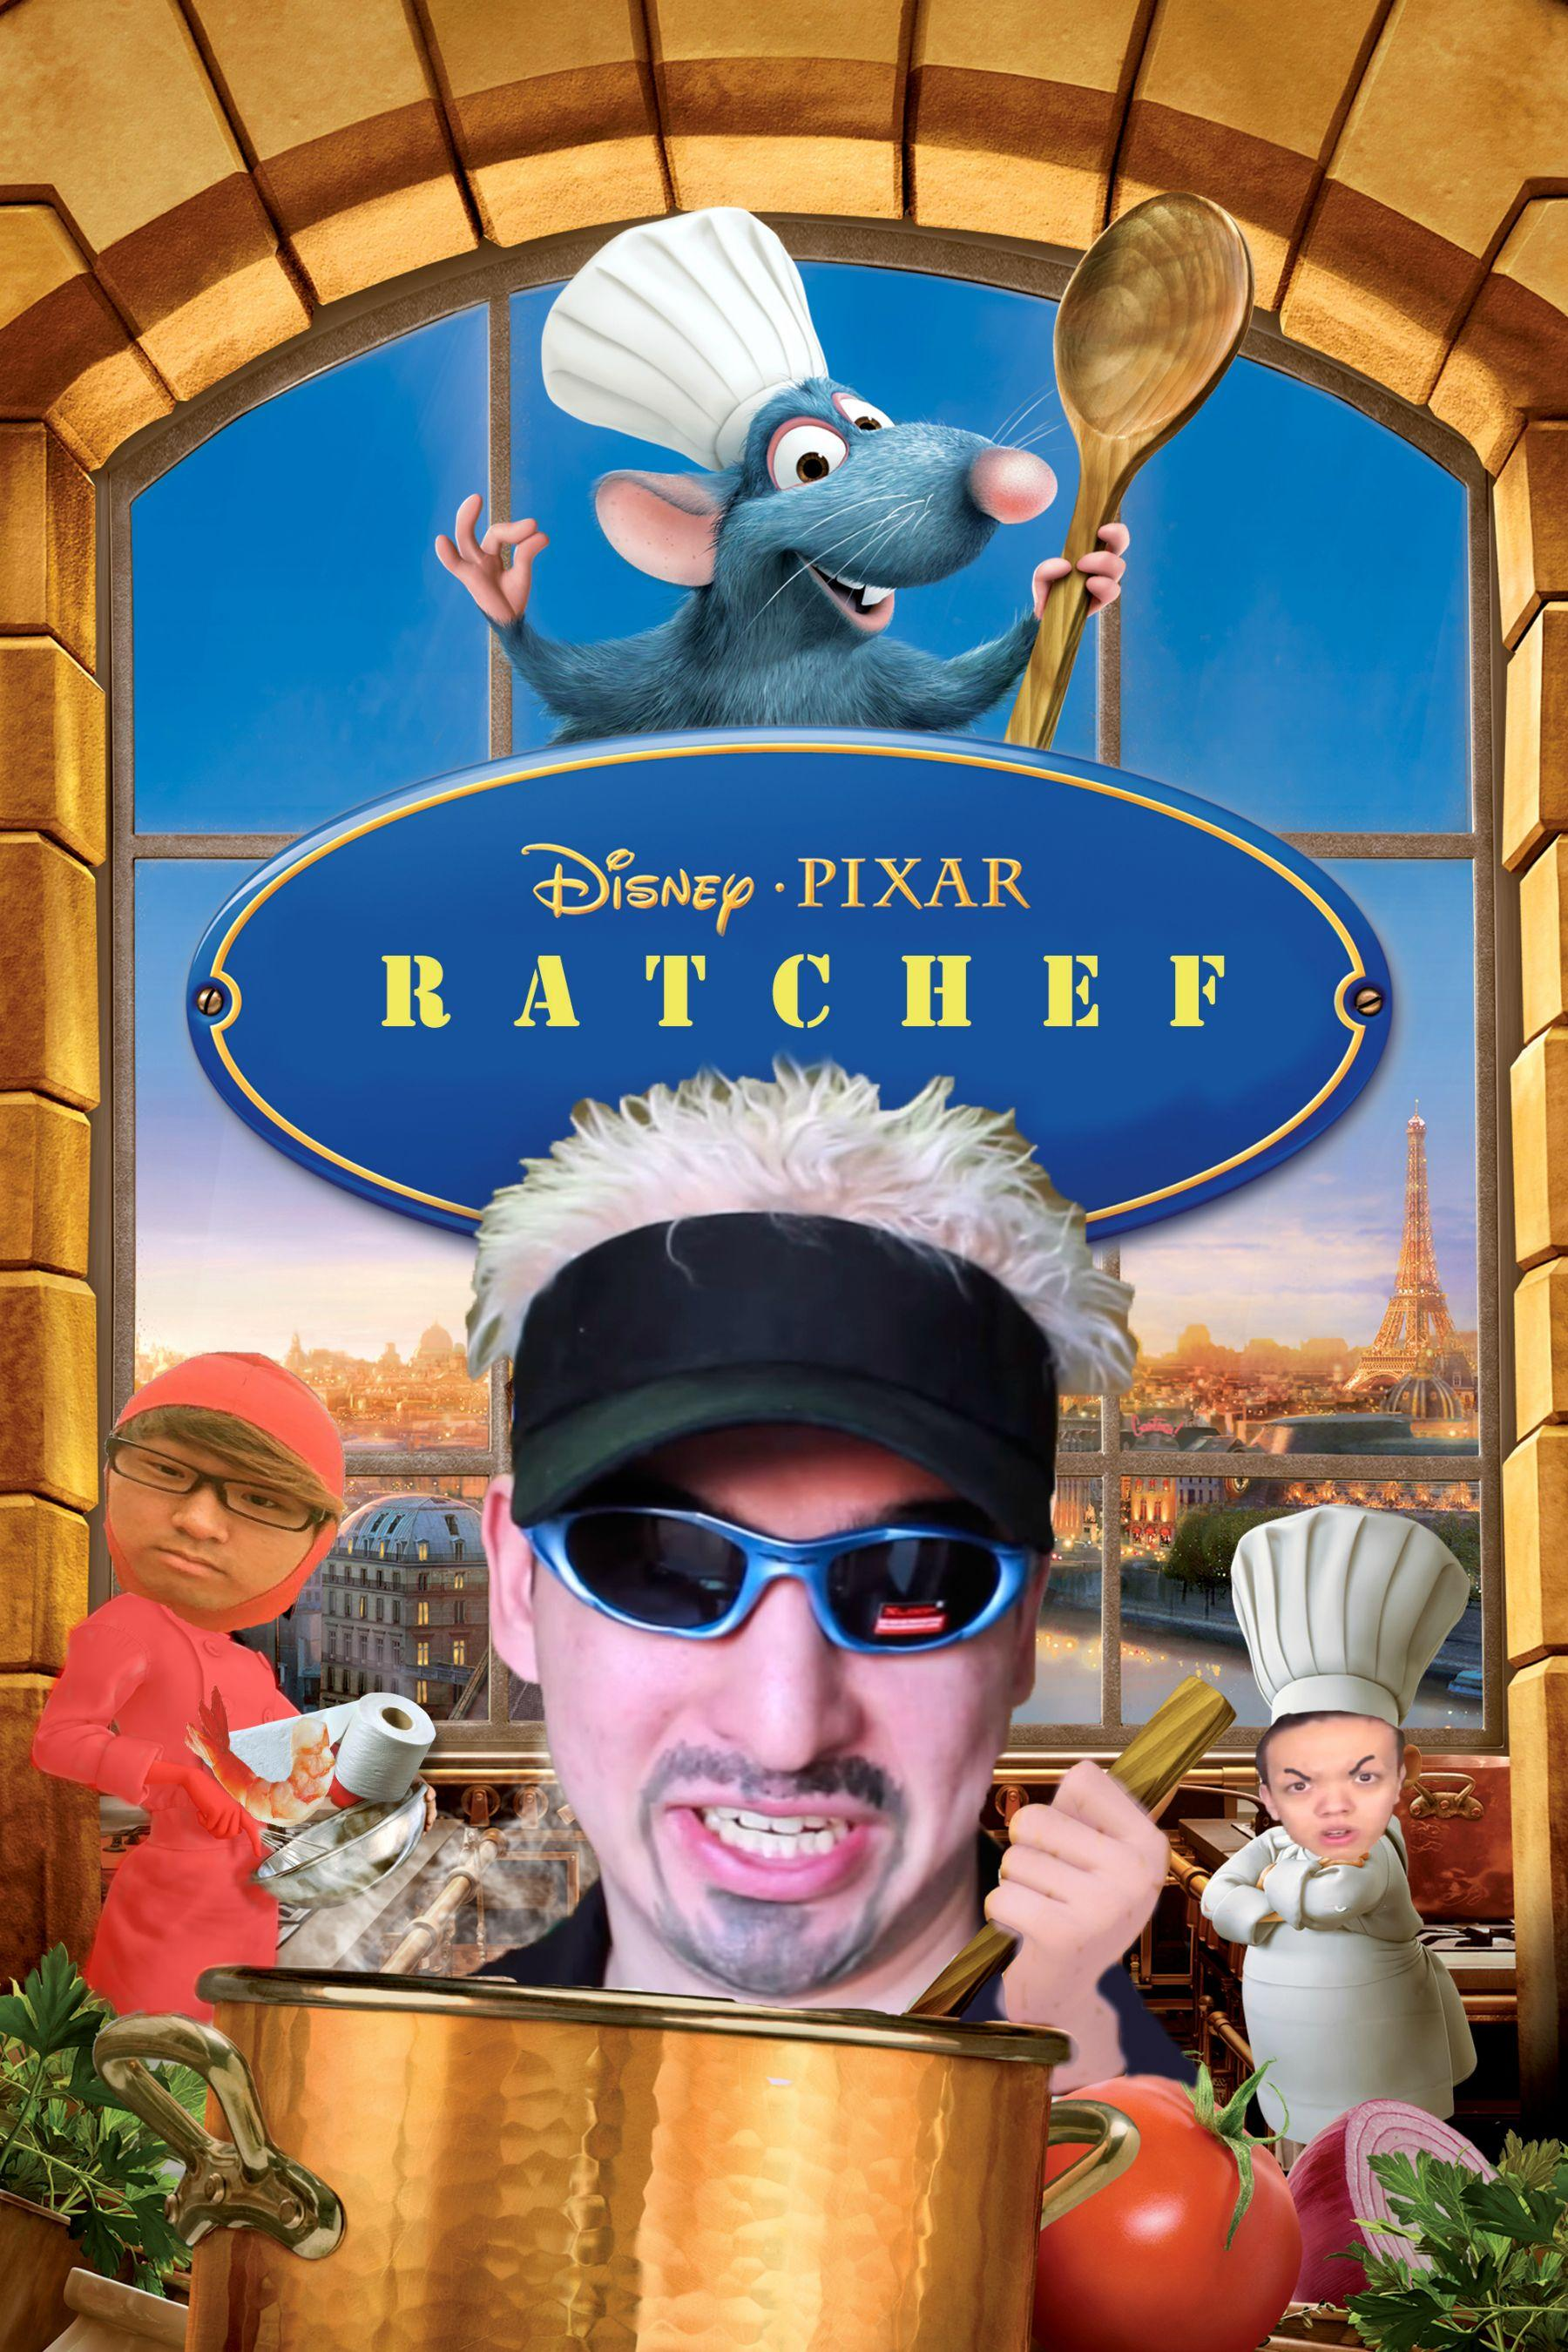 RatChef: Coming to theaters April 20th! | Filthy Frank ...